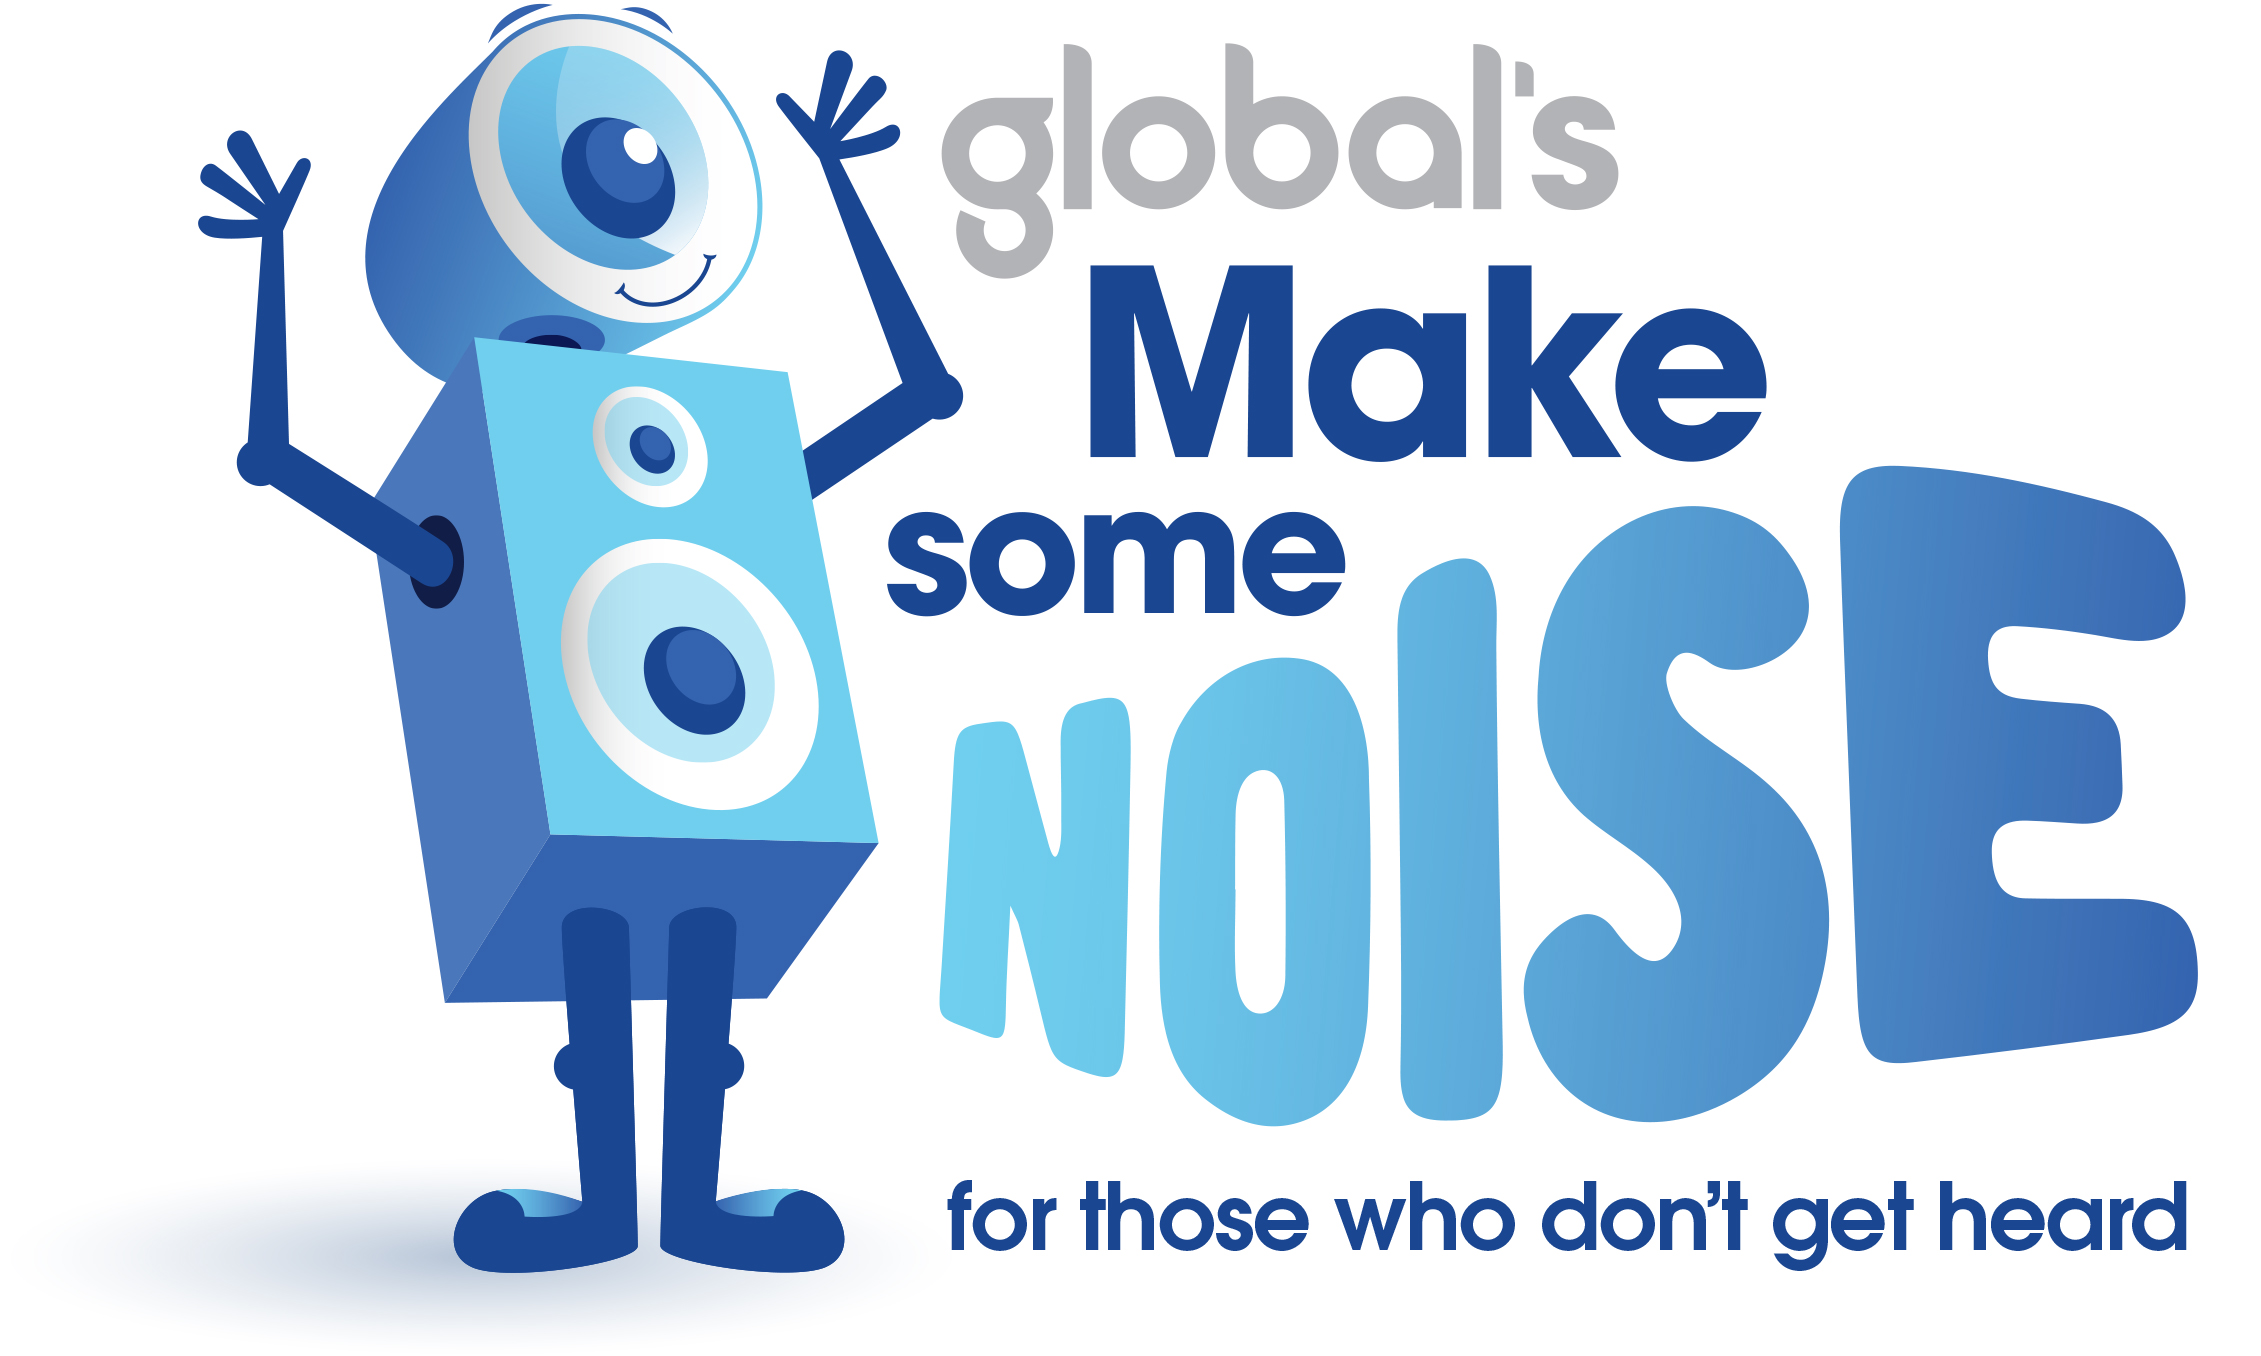 Global's Make Some Noise 2018